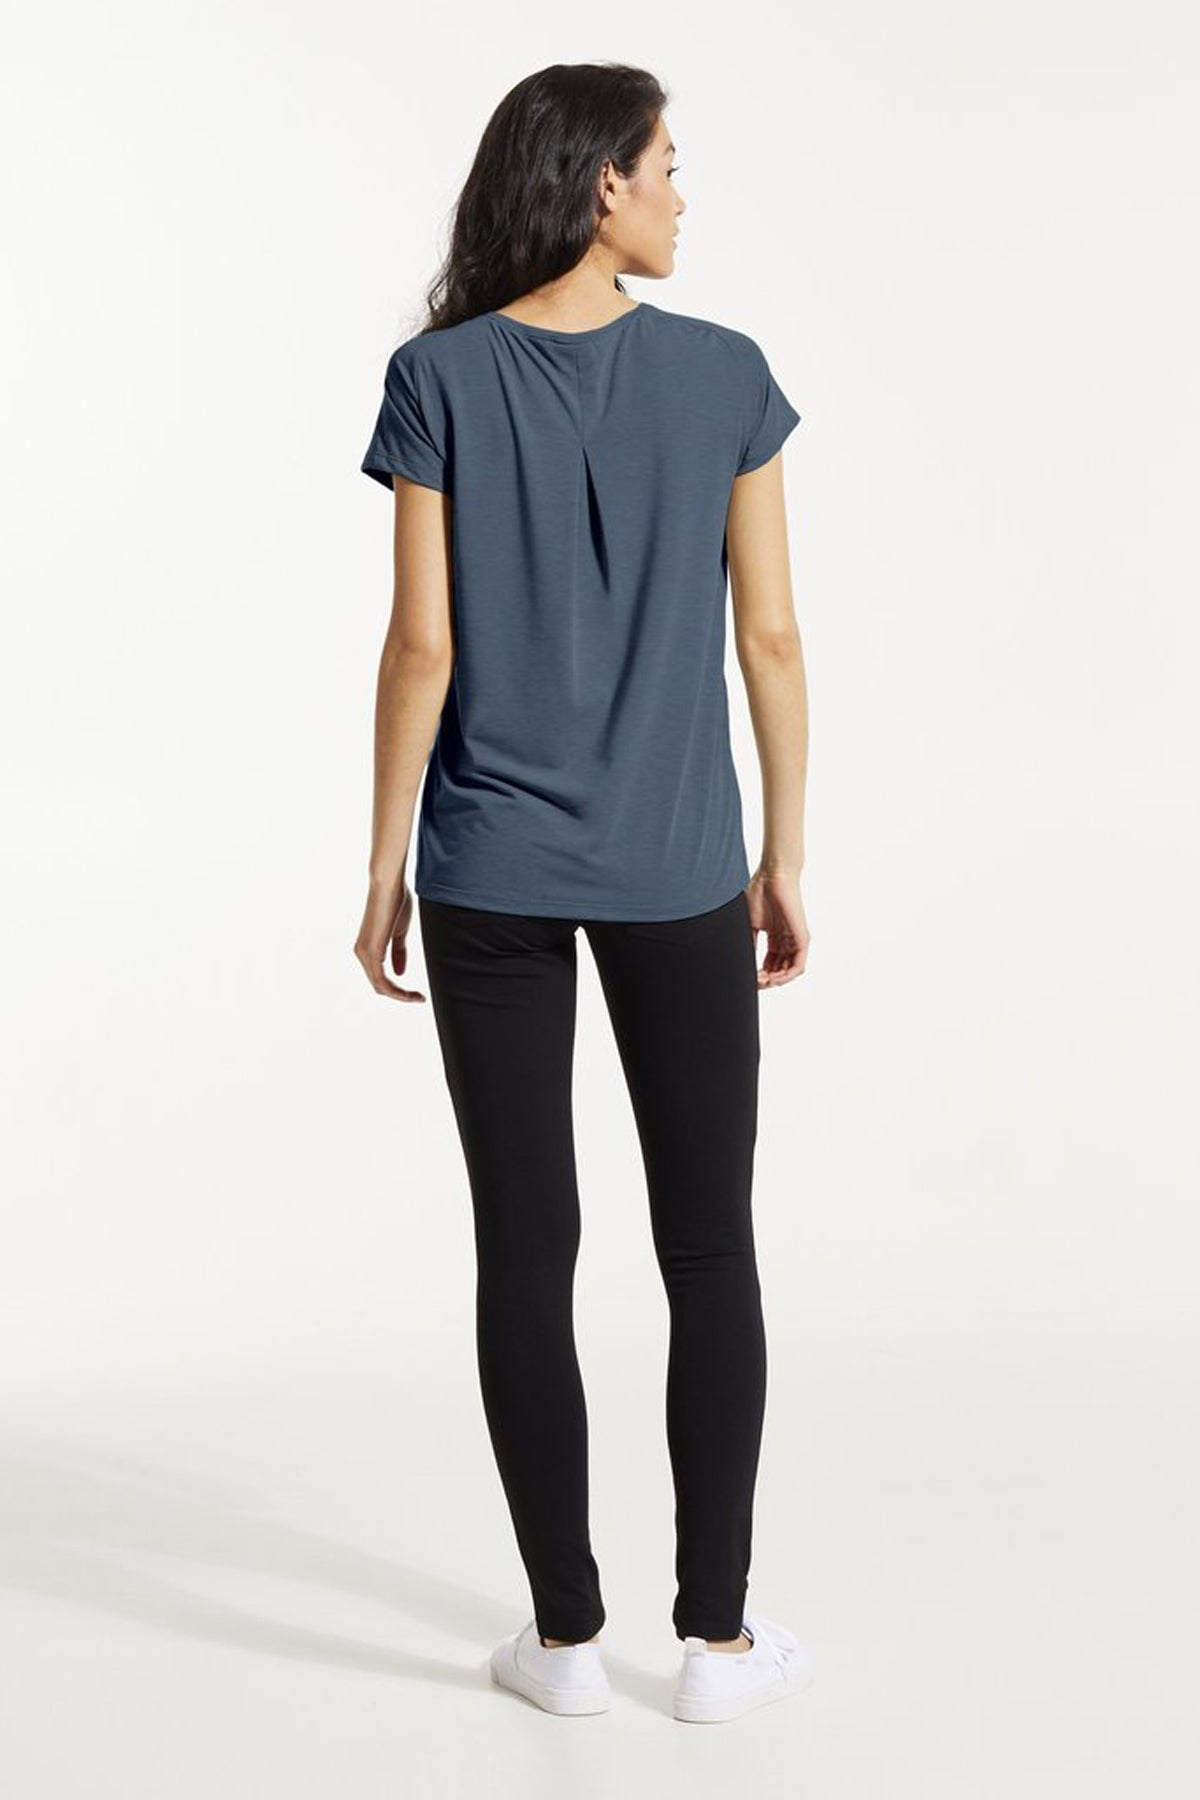 GAX Shirt by FIG, Bowerbird, back view, T-shirt, V-neck, saddle shoulders, box pleat at back, Drirelease fabric, sizes XS to XL, made in Canada